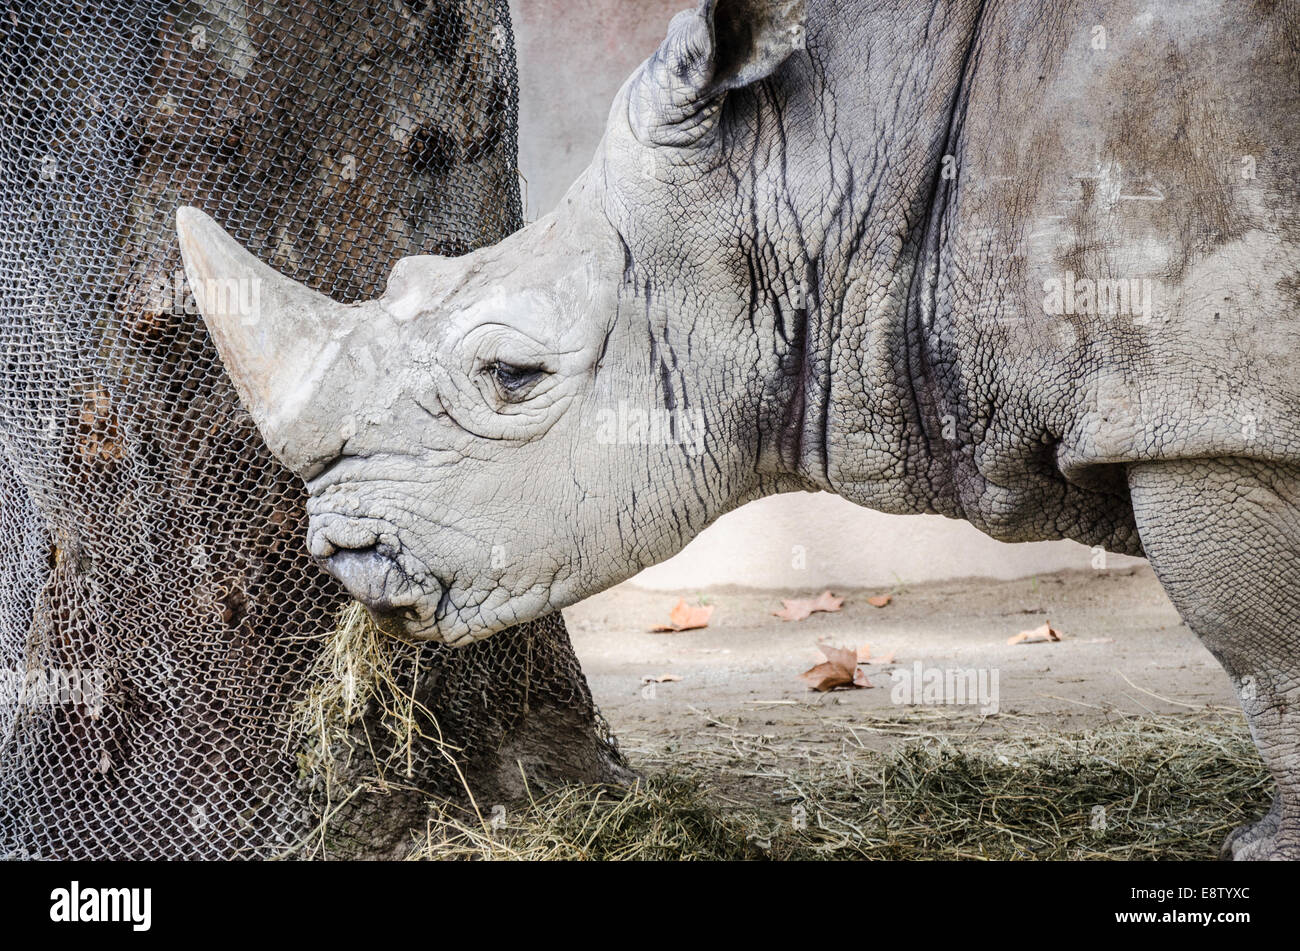 Rhino eating it's dinner of hay at Barcelona zoo. Detailed photograph of skin, face, horn and it's food. - Stock Image